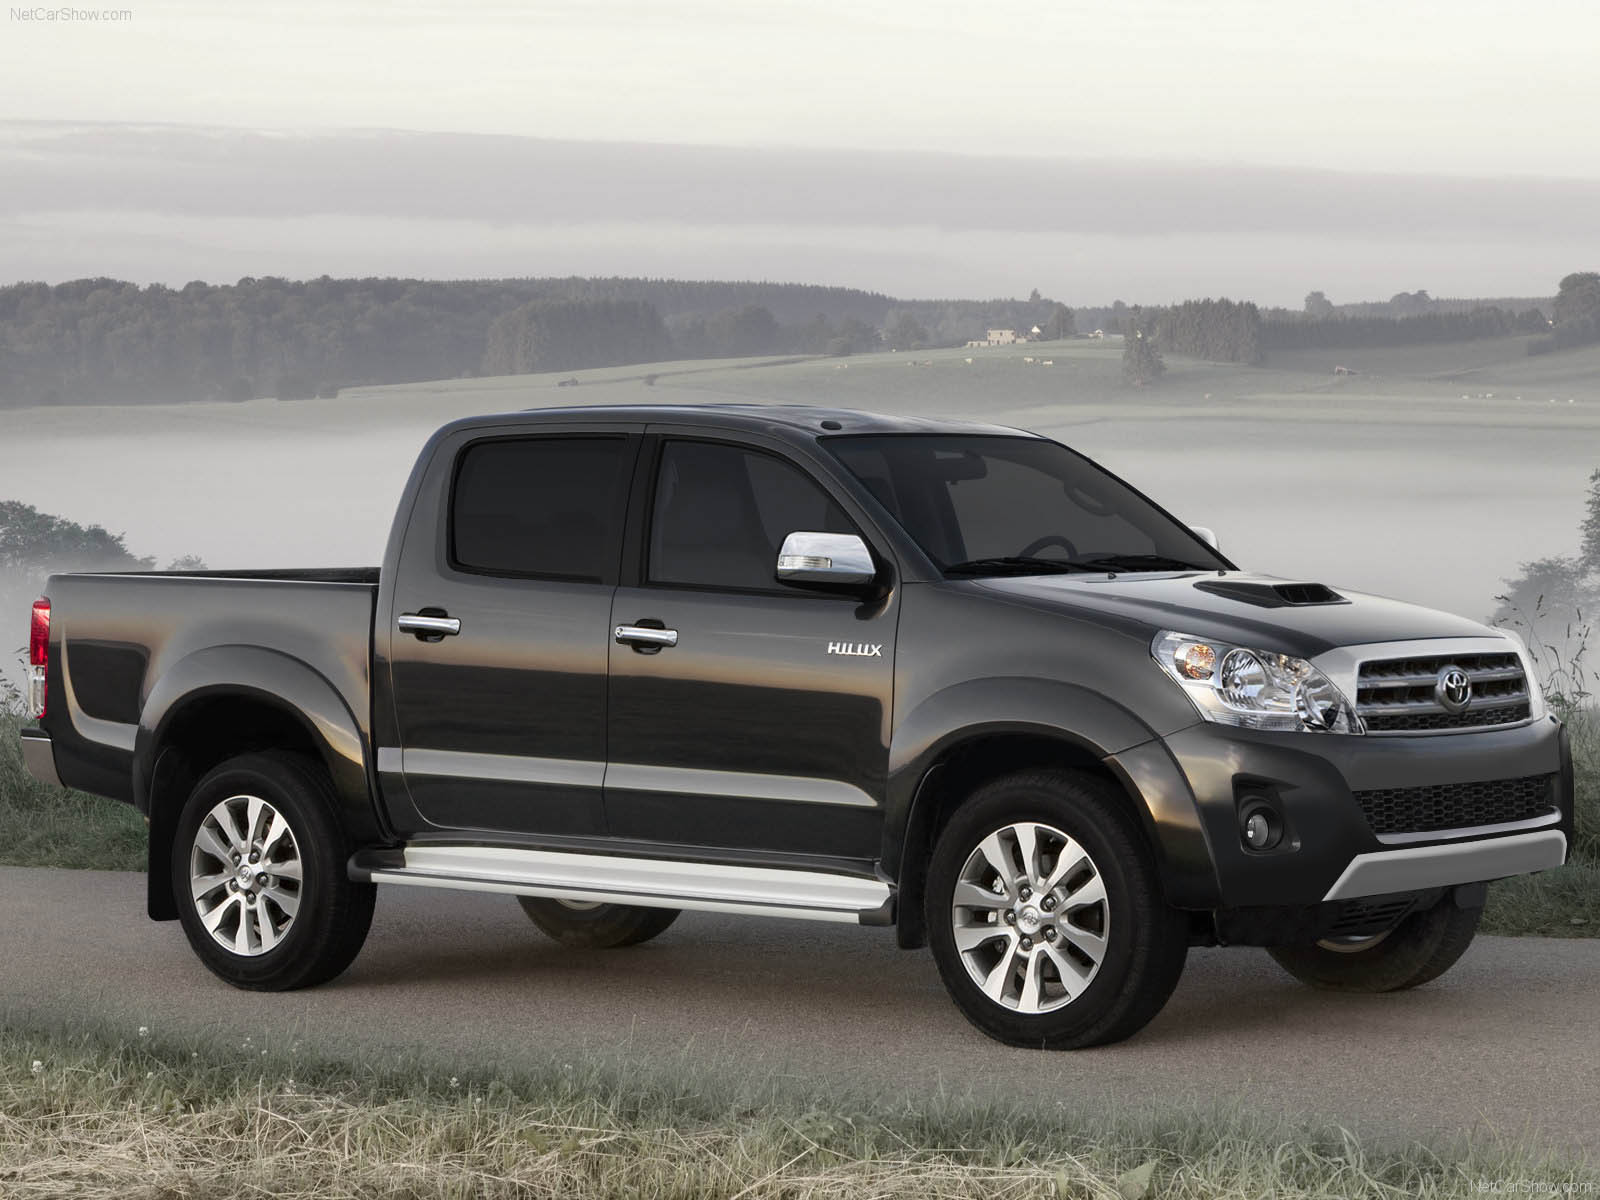 Toyota Hilux 2012 Pickup Truck Review with Wallpapers Auto Car 1600x1200